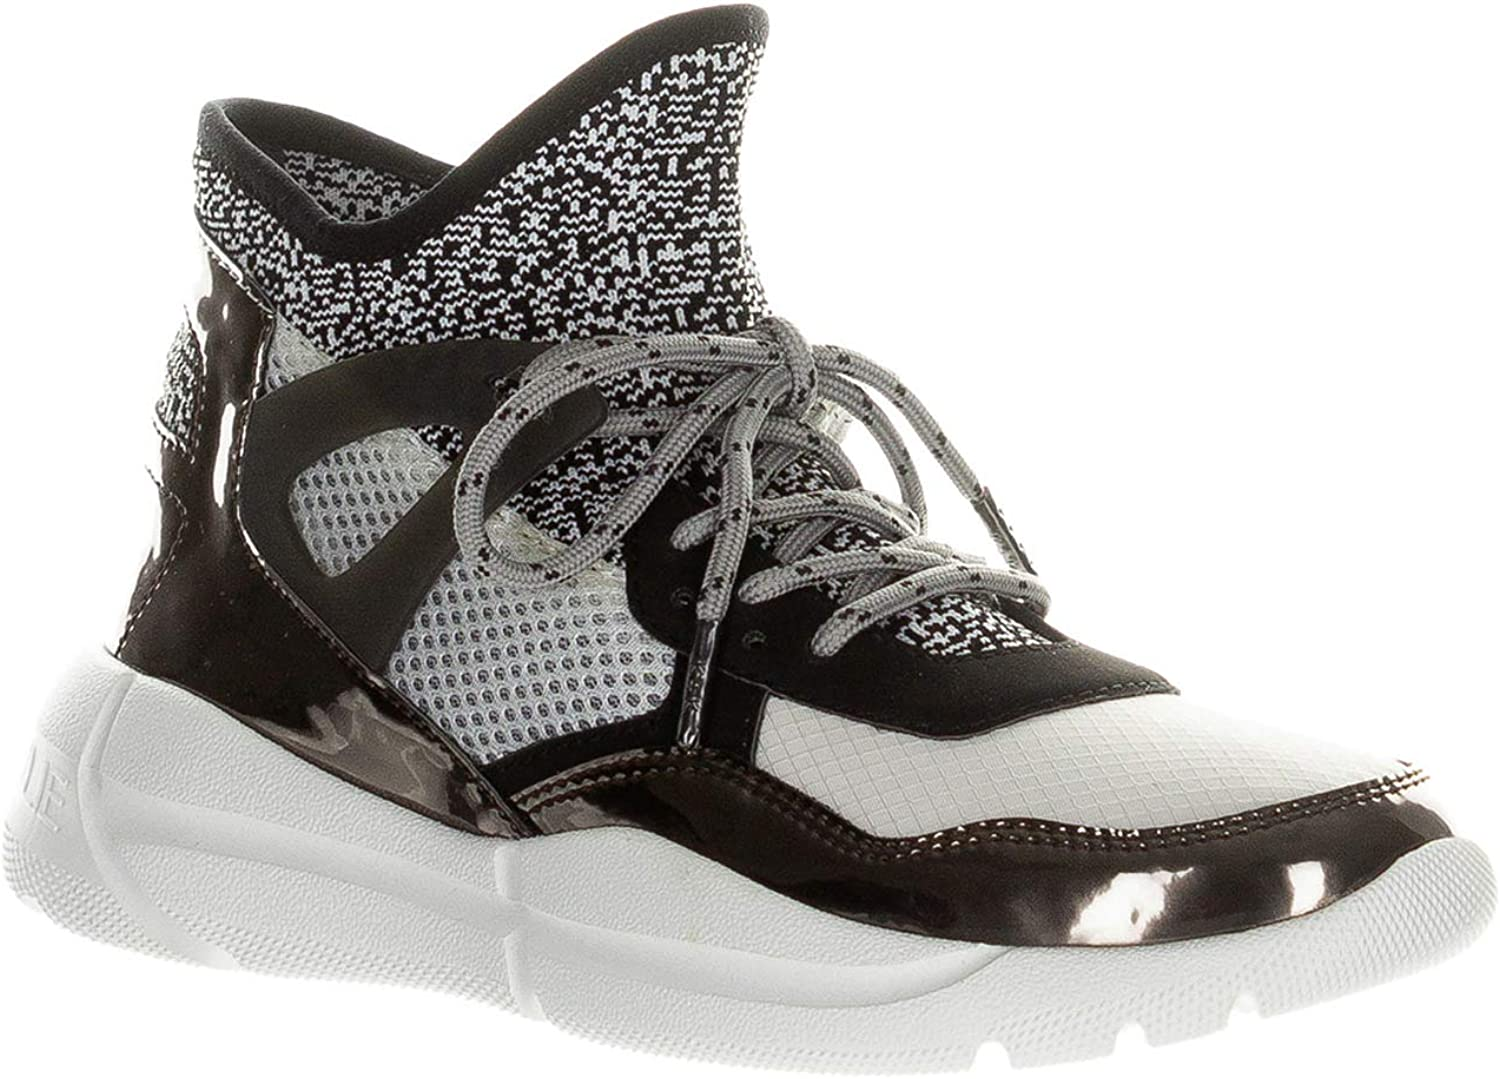 Kendall + Kylie Women's North Sneakers Pewter-Black-White Pewter Black White